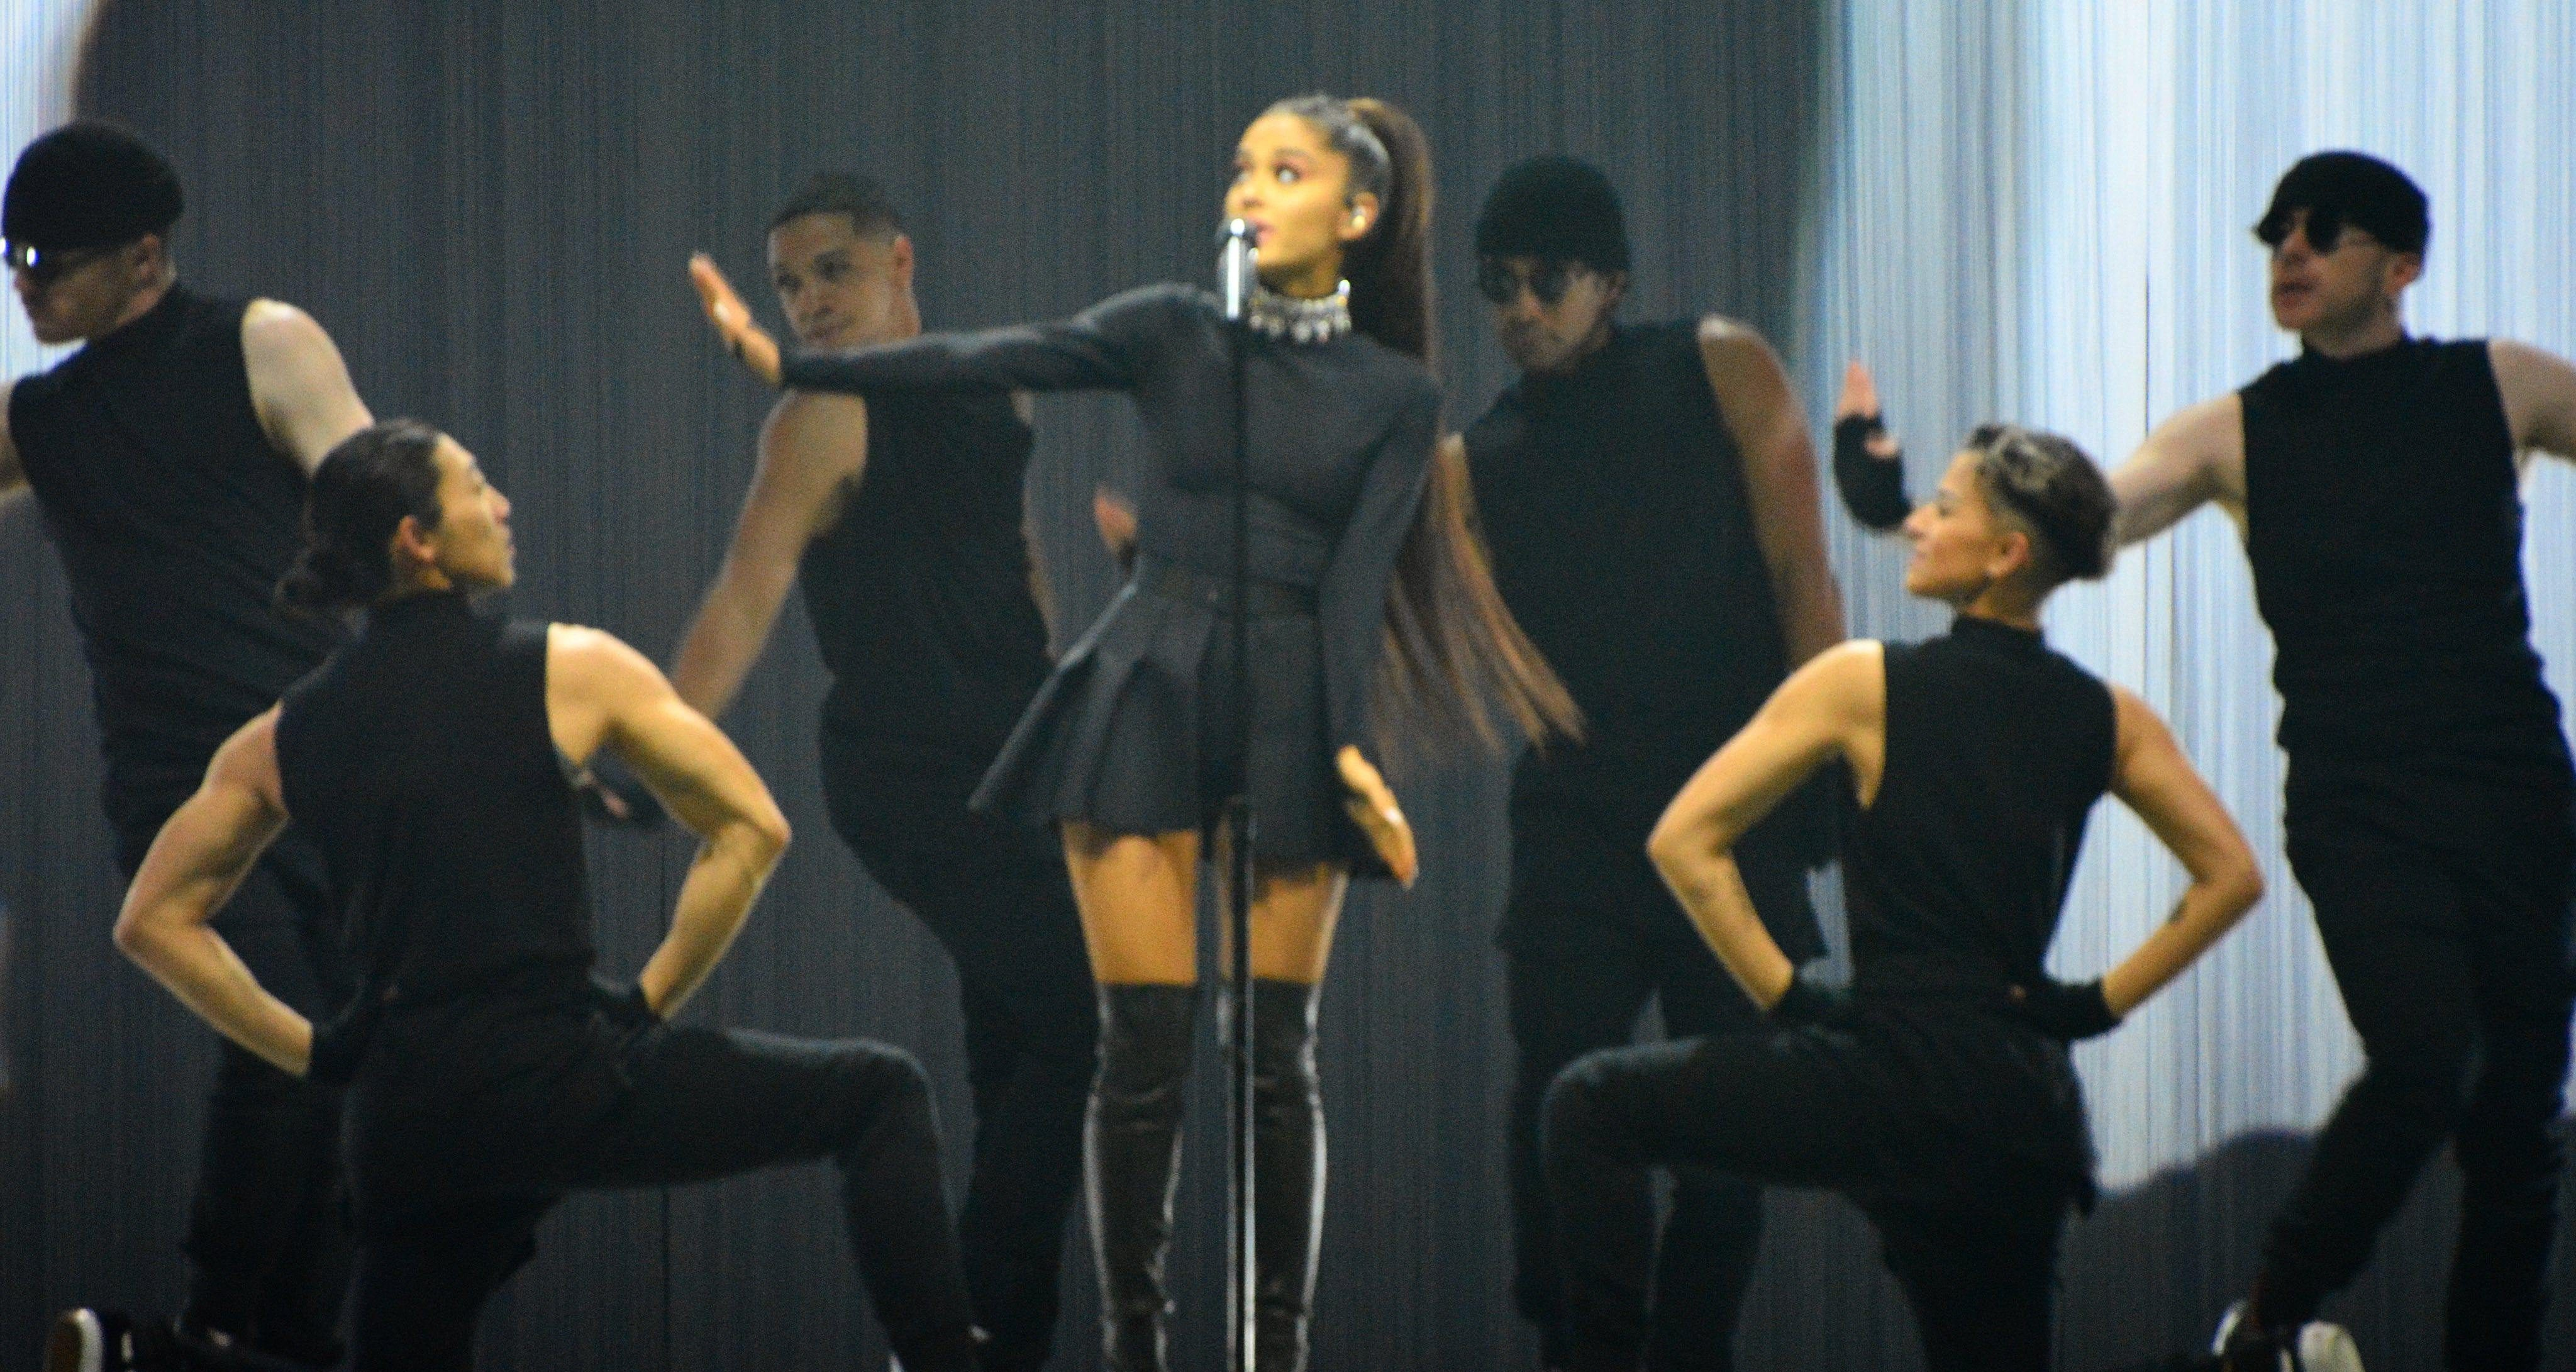 Ariana Grande plays victorious sold-out show in Vancouver (PHOTOS, VIDEOS)